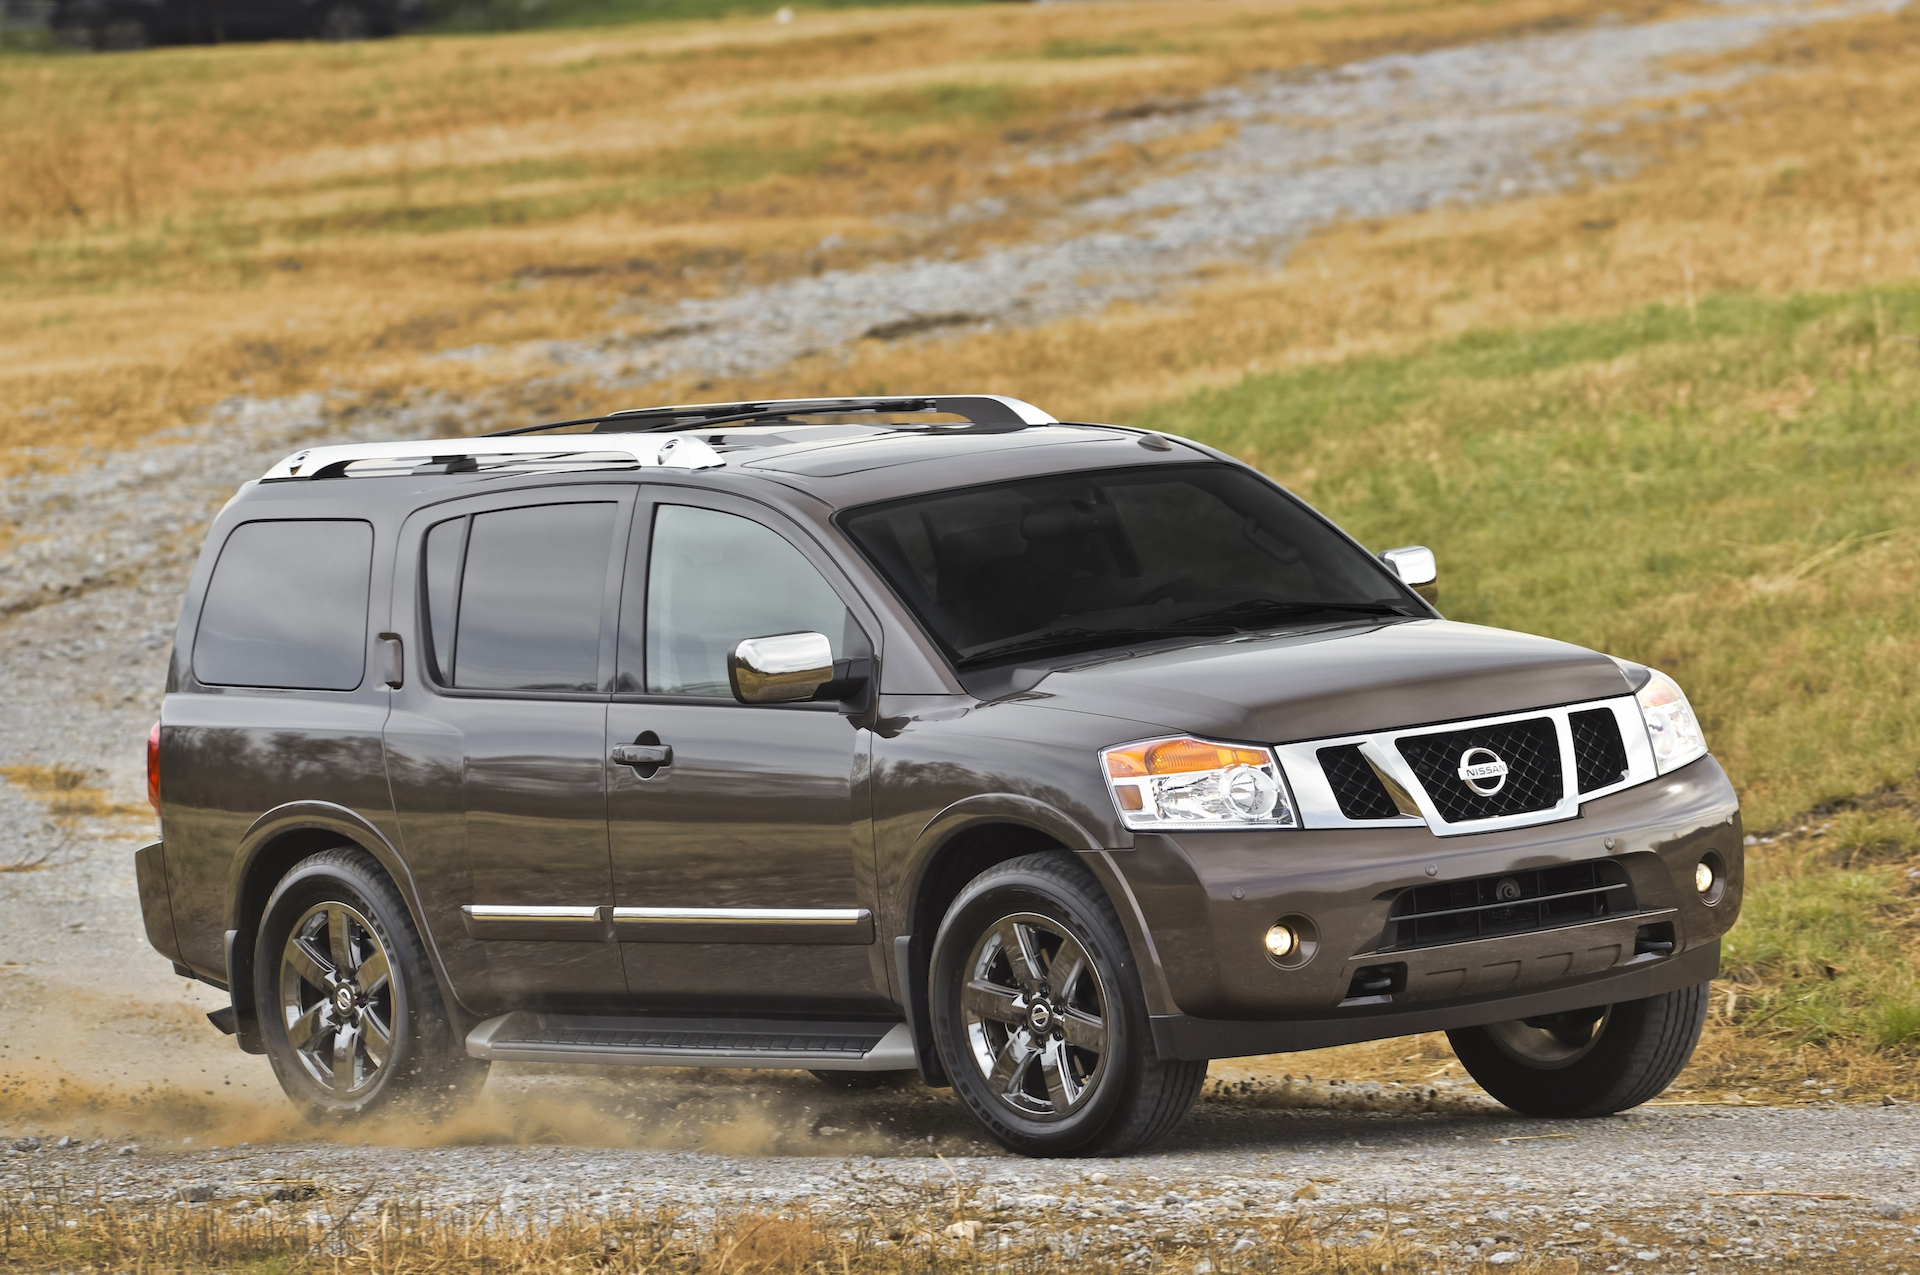 Mercedes El Paso >> 2015 Nissan Armada Review, Ratings, Specs, Prices, and Photos - The Car Connection